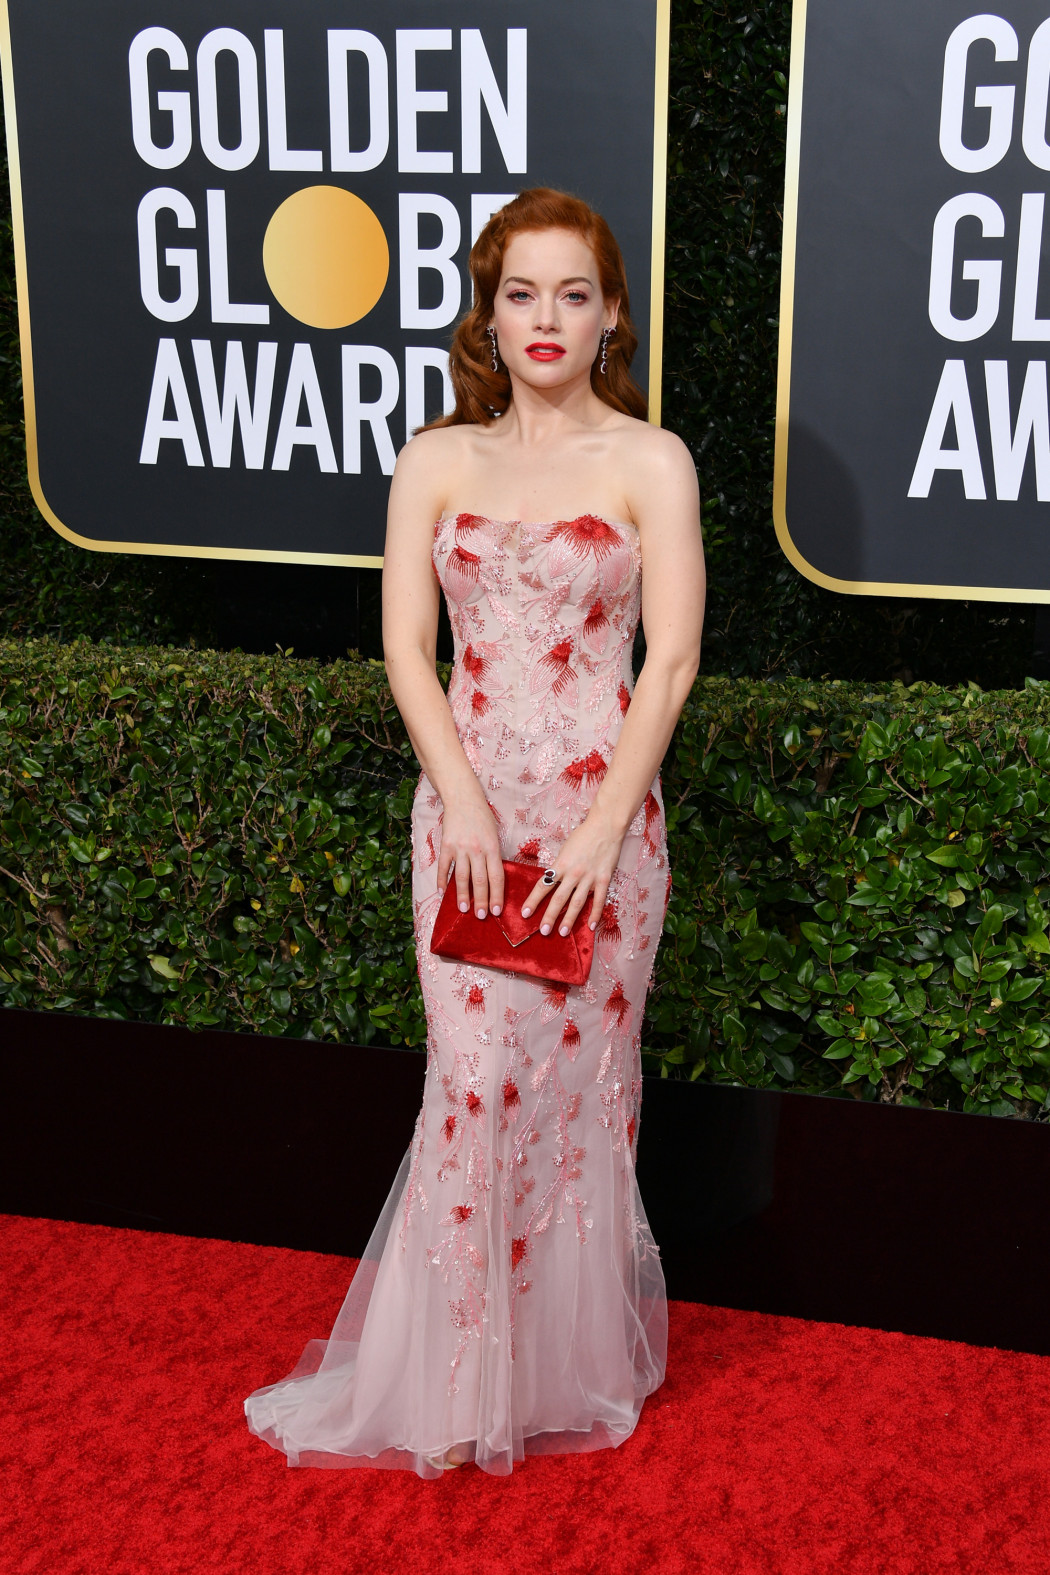 Golden Globes 2020 : les plus beaux looks du tapis rouge - 5